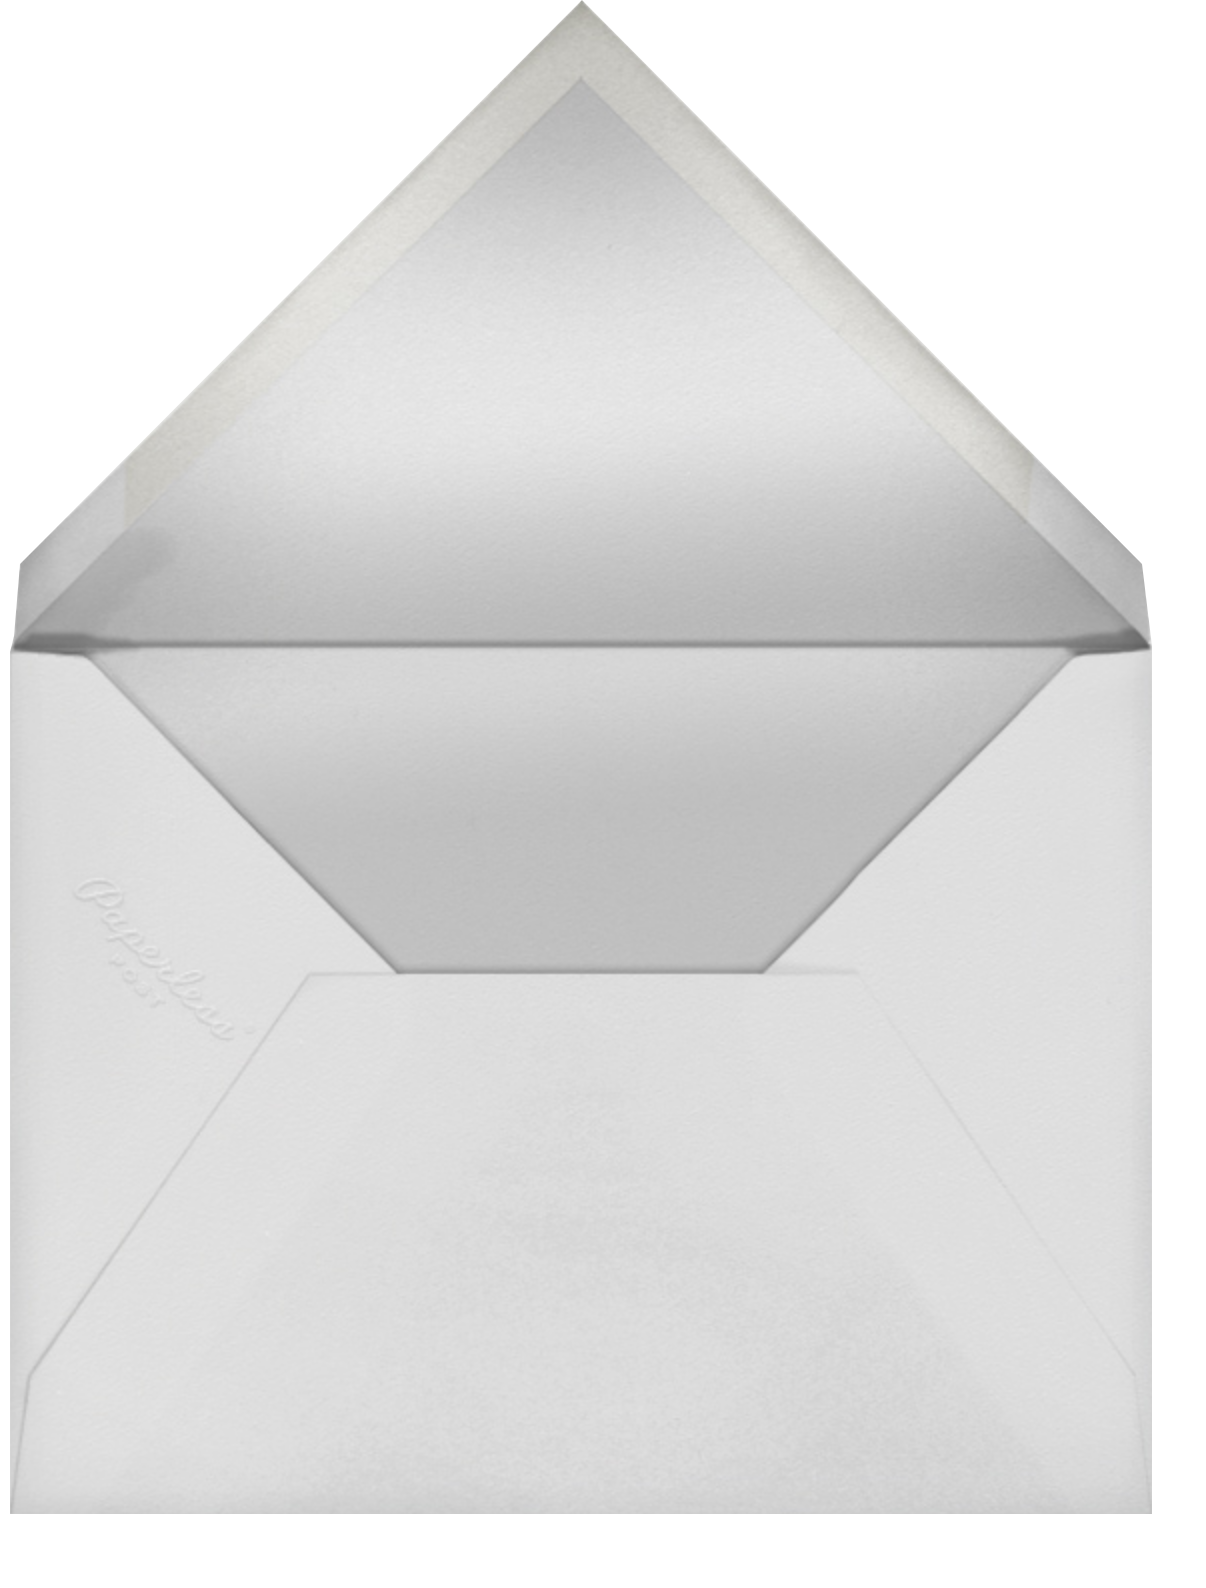 Shake N Roll - Silver - Paperless Post - Surprise party - envelope back